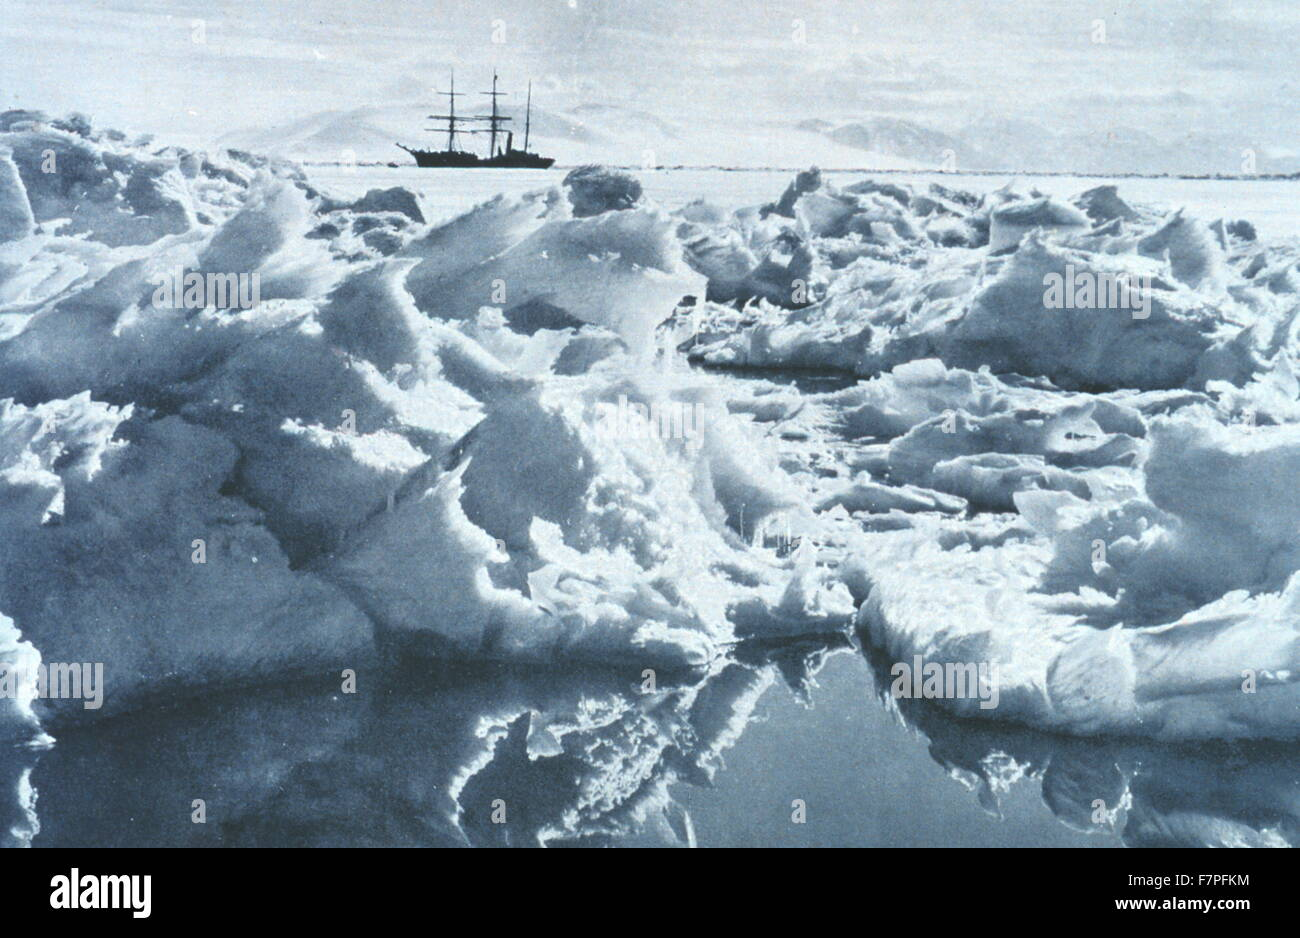 Photograph taken aboard the Terra Nova, a whaler and polar expedition ship used for the 1910 British Antarctic Expedition, - Stock Image